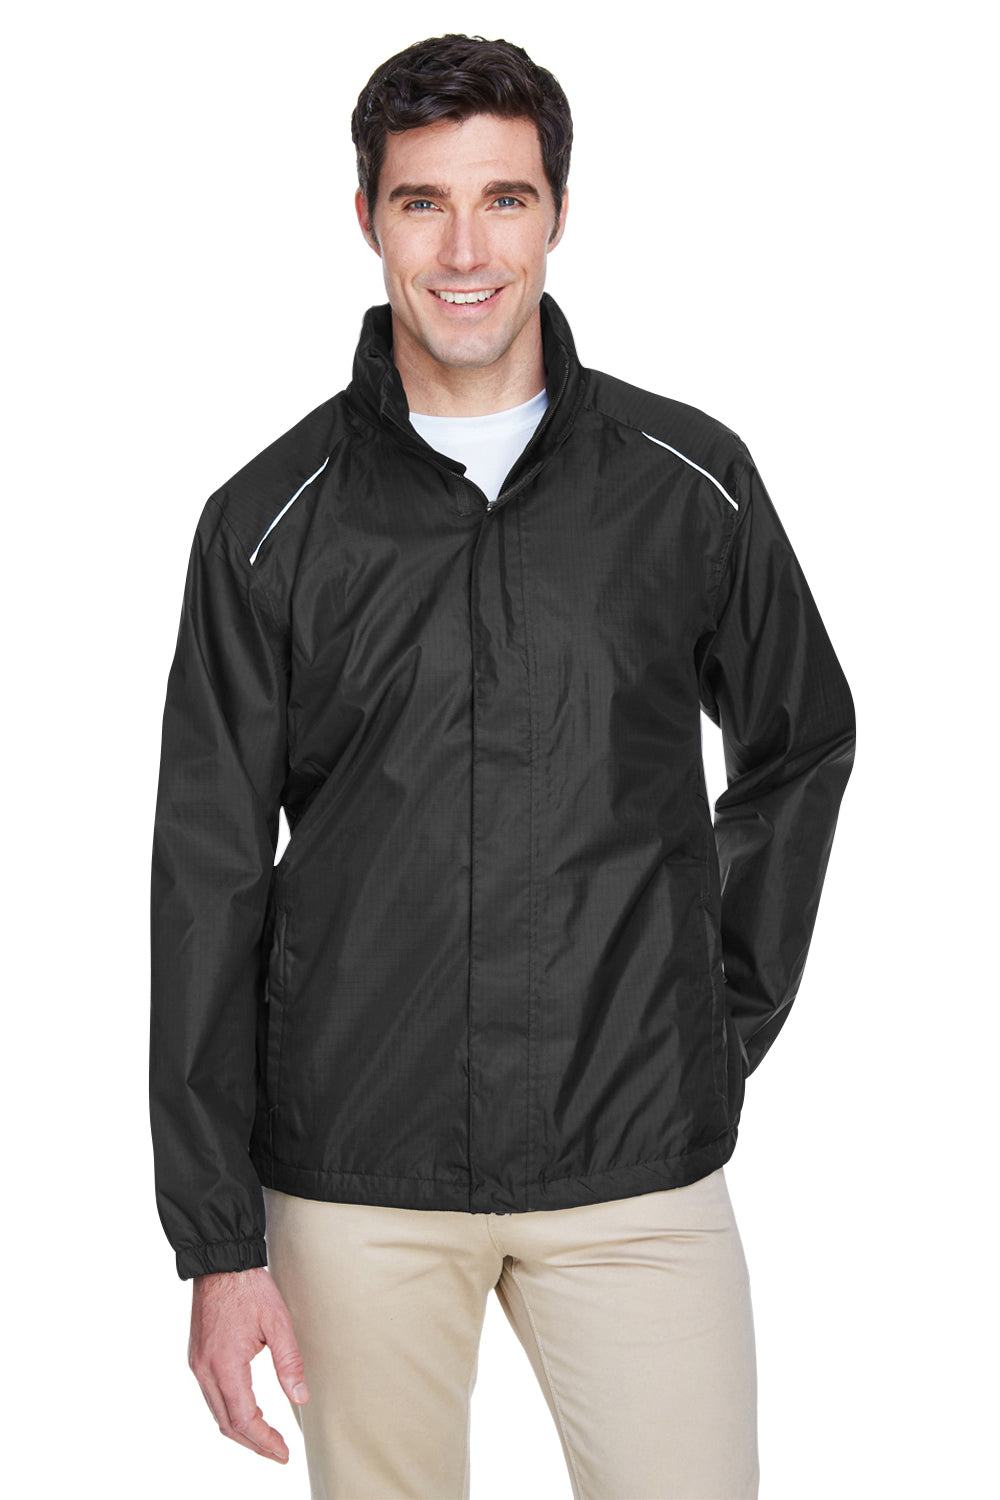 Core 365 88185 Mens Climate Waterproof Full Zip Hooded Jacket Black Front